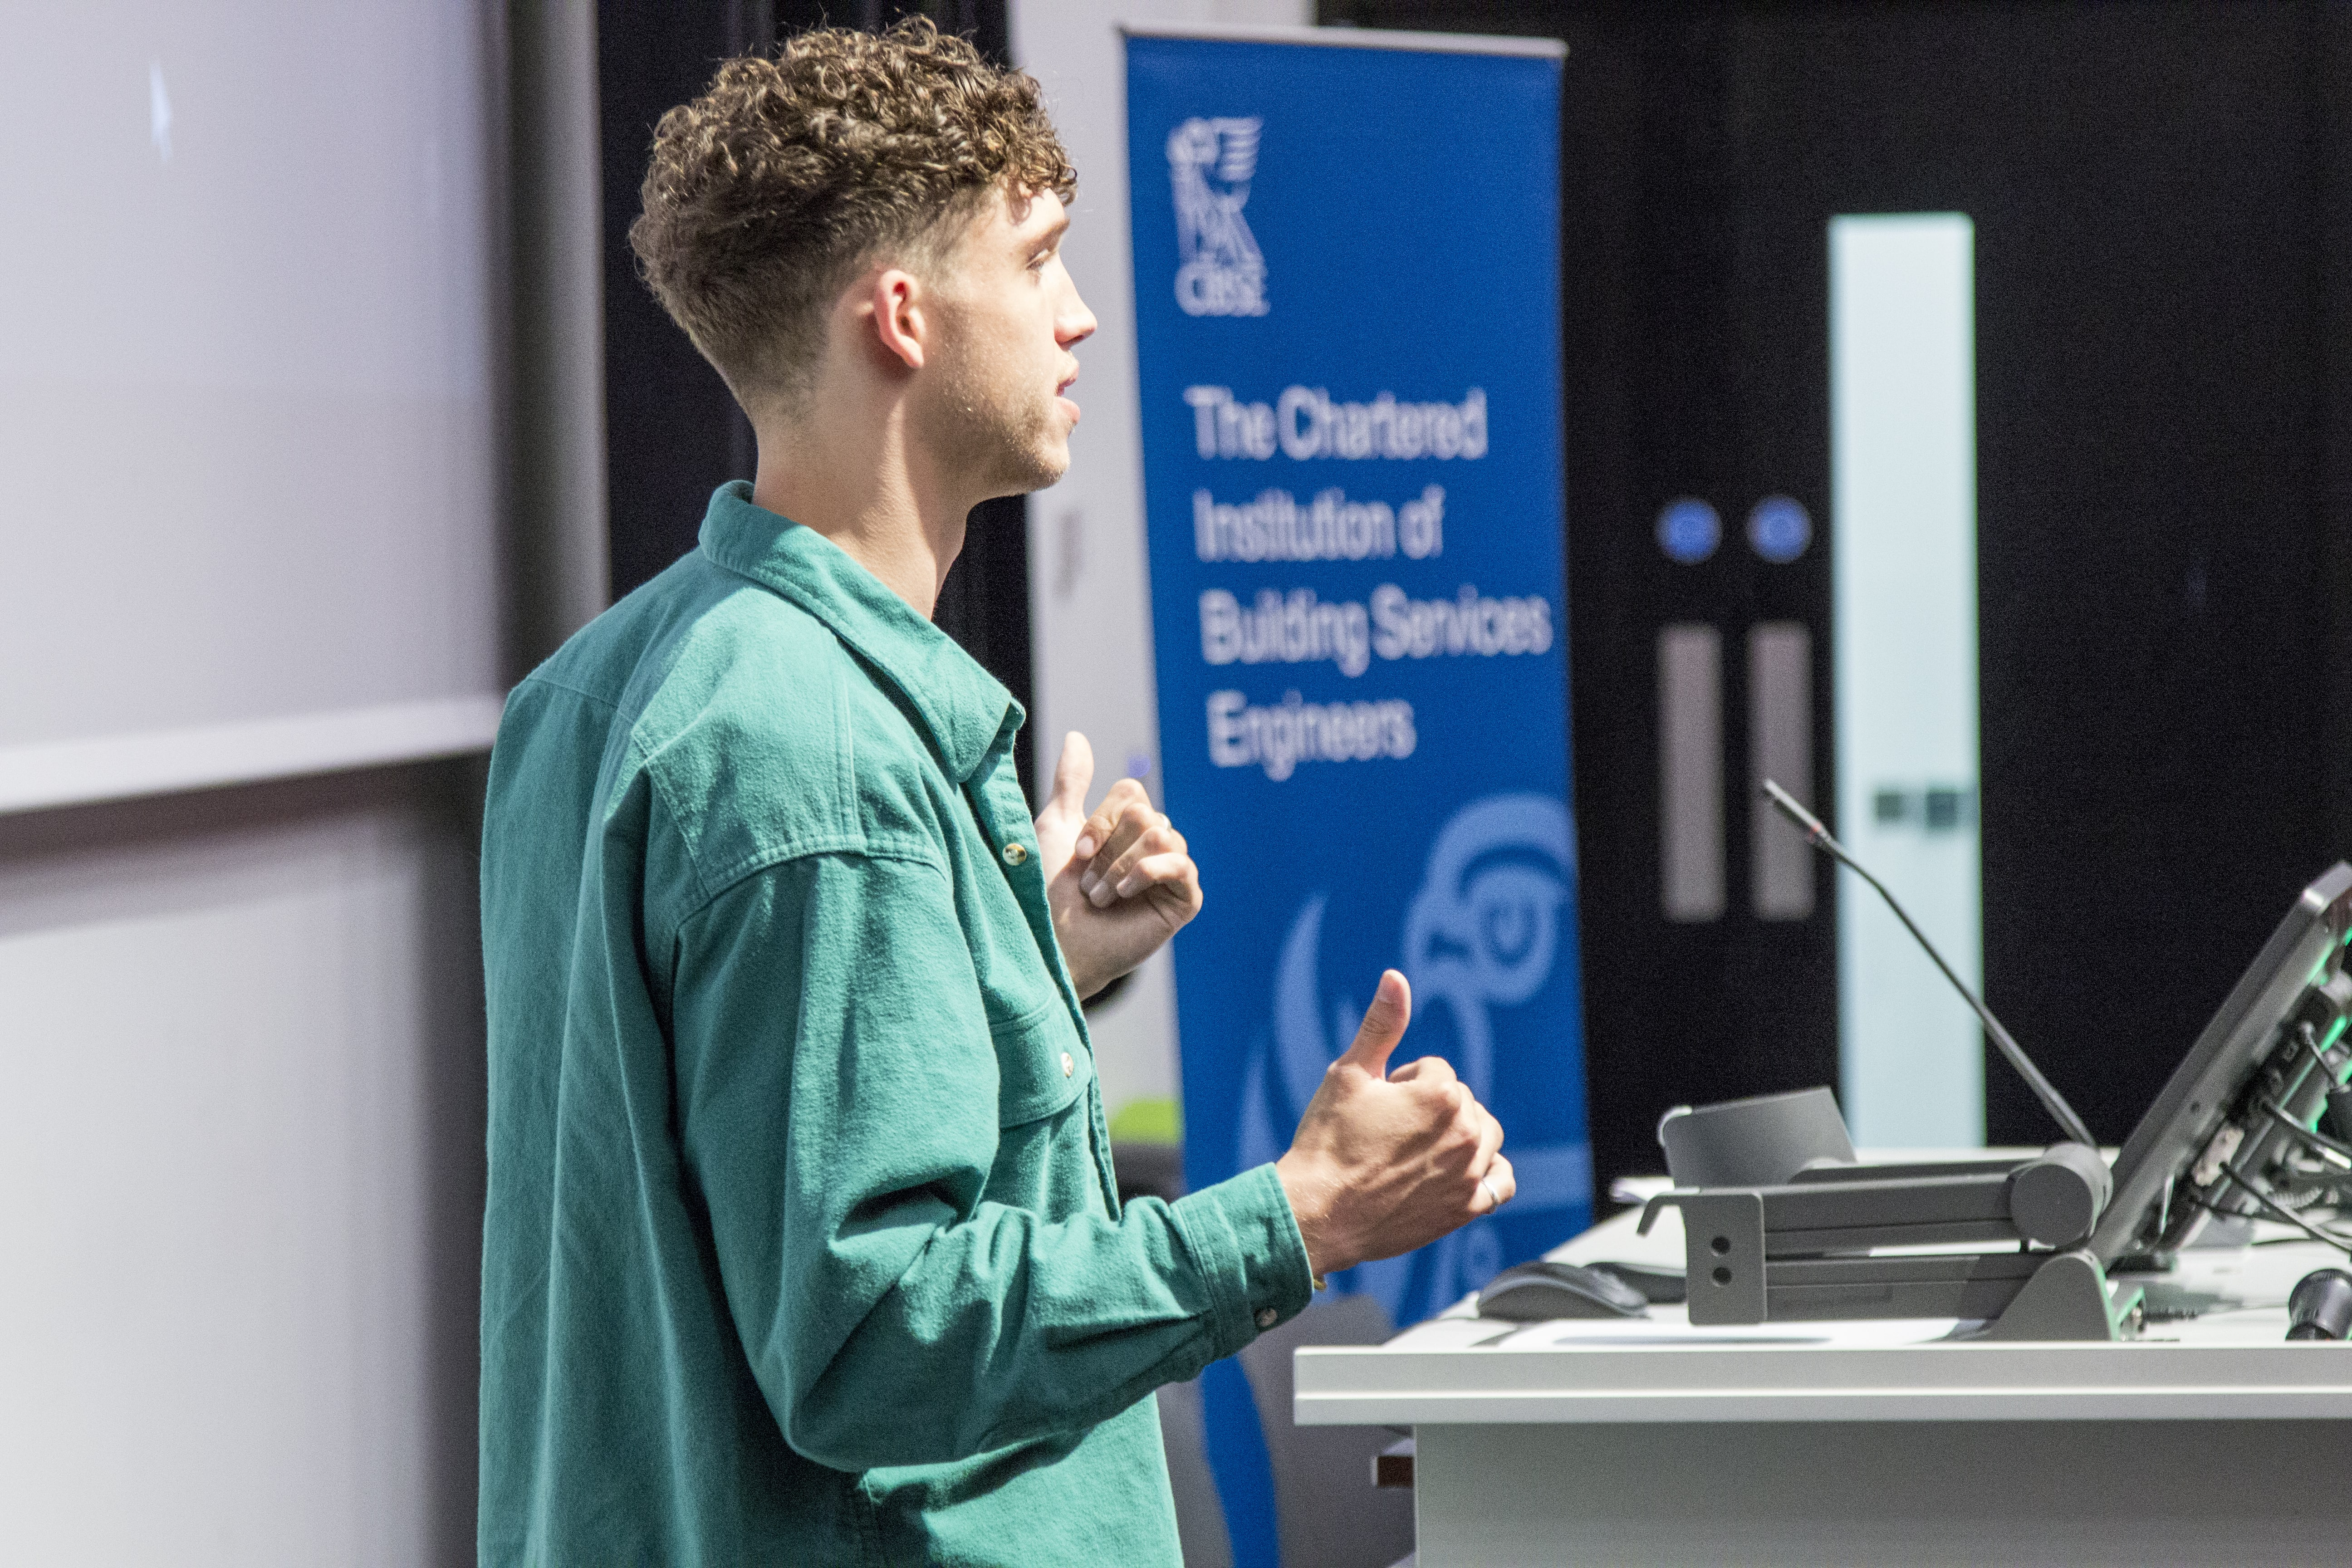 CIBSE Technical Symposium 2019 - Awards, Magazine Feature and More